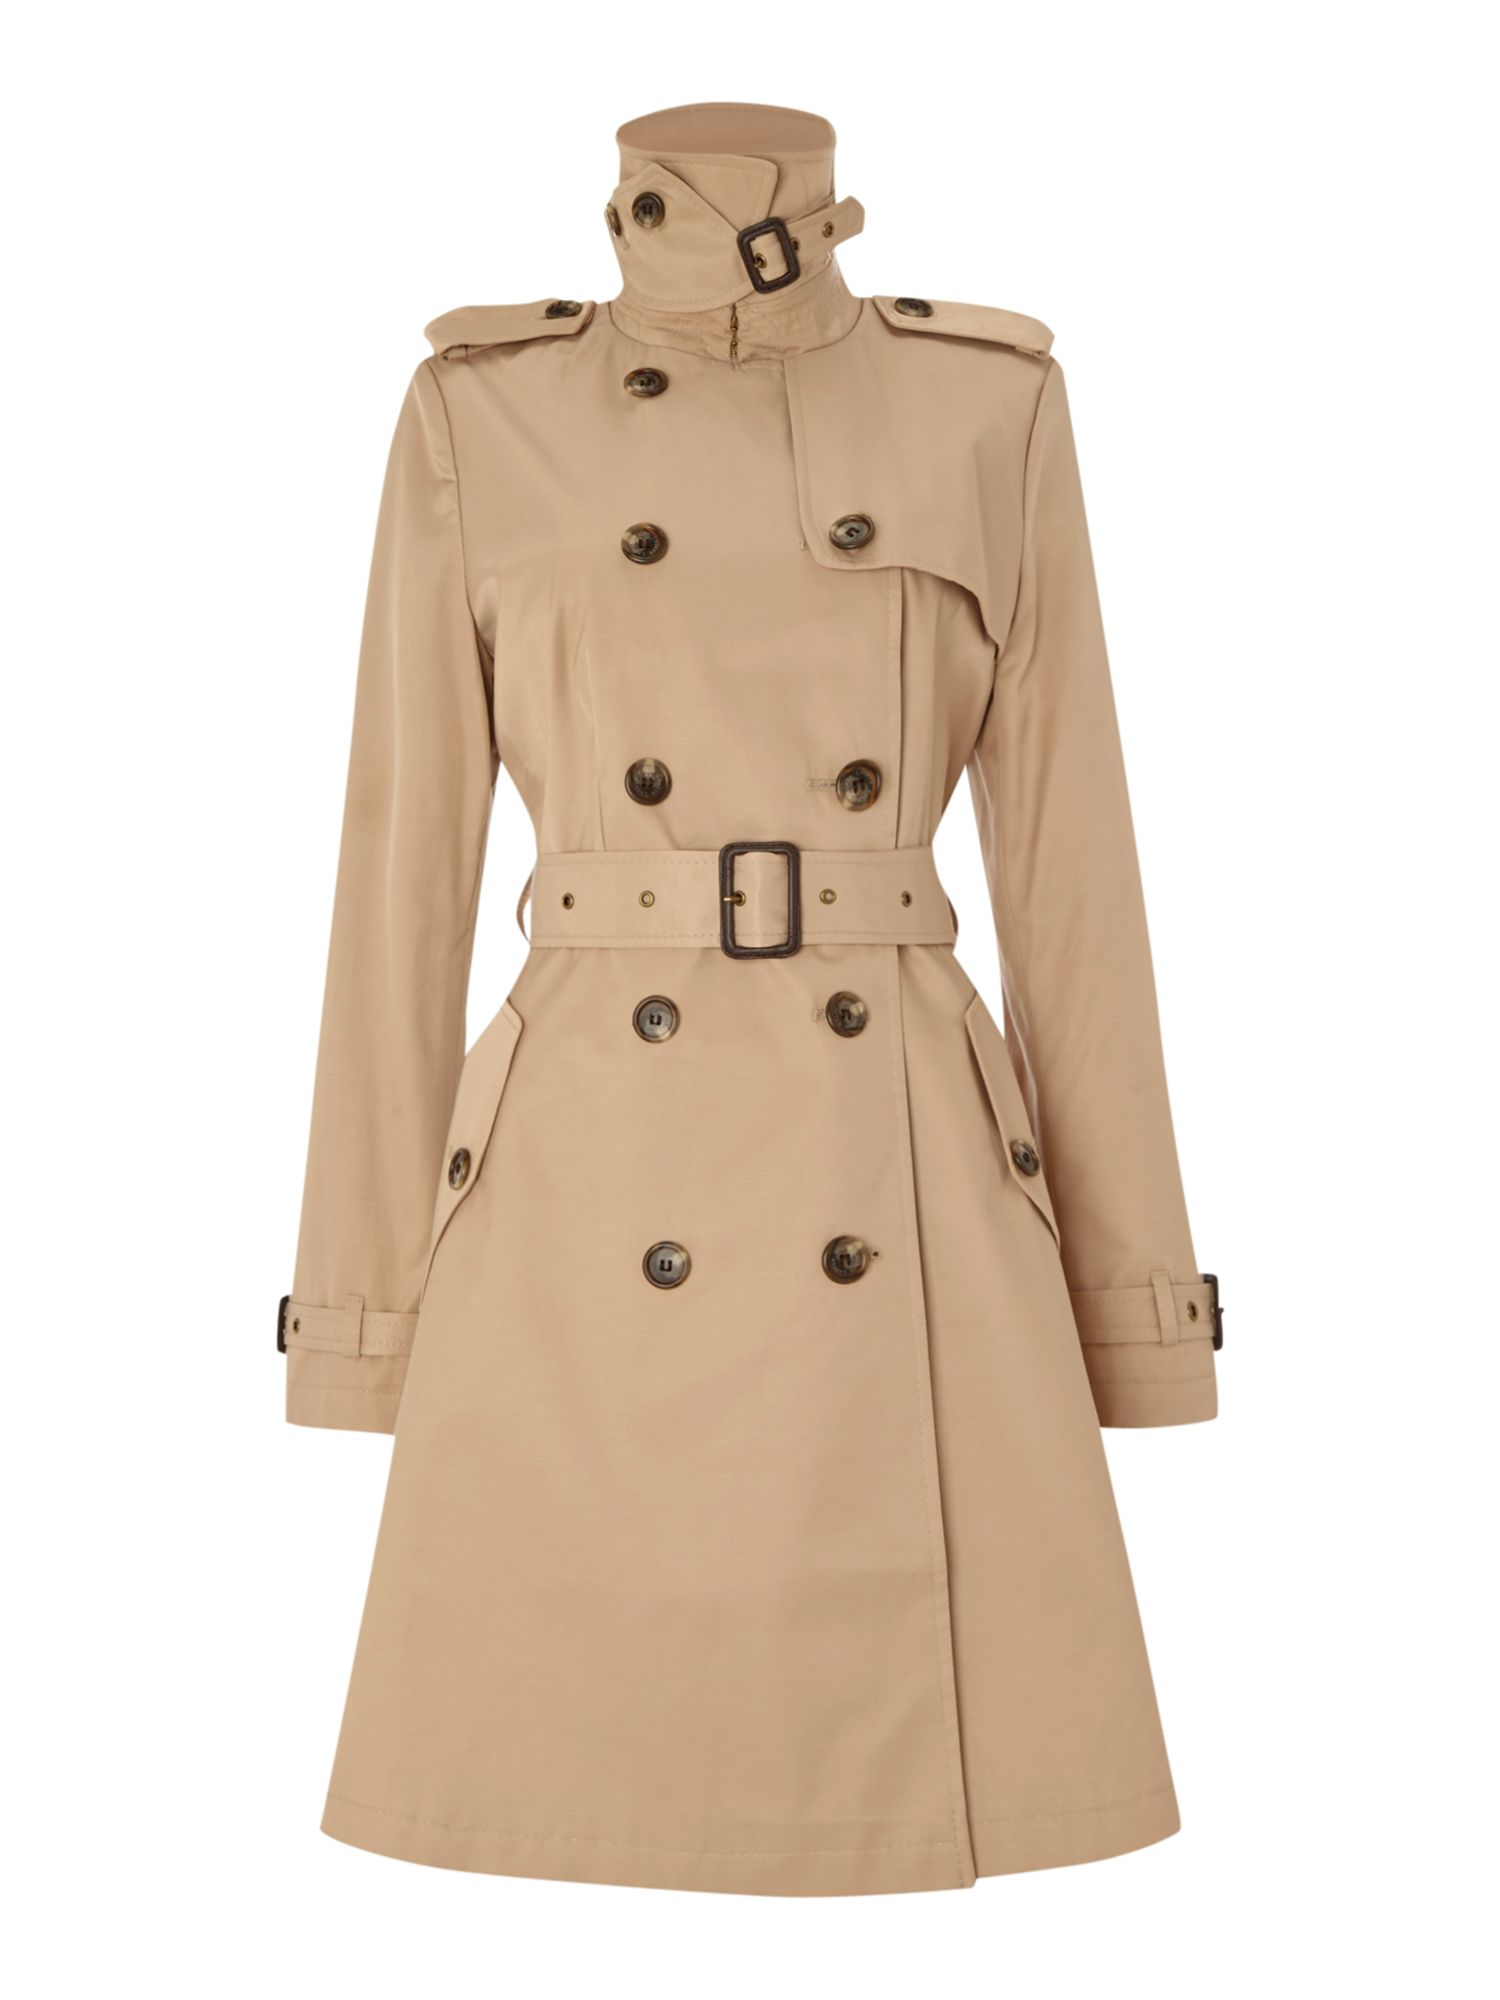 Waterproof Duffle Bags >> Lyst - Lauren By Ralph Lauren Skirted Trench Coat in Natural